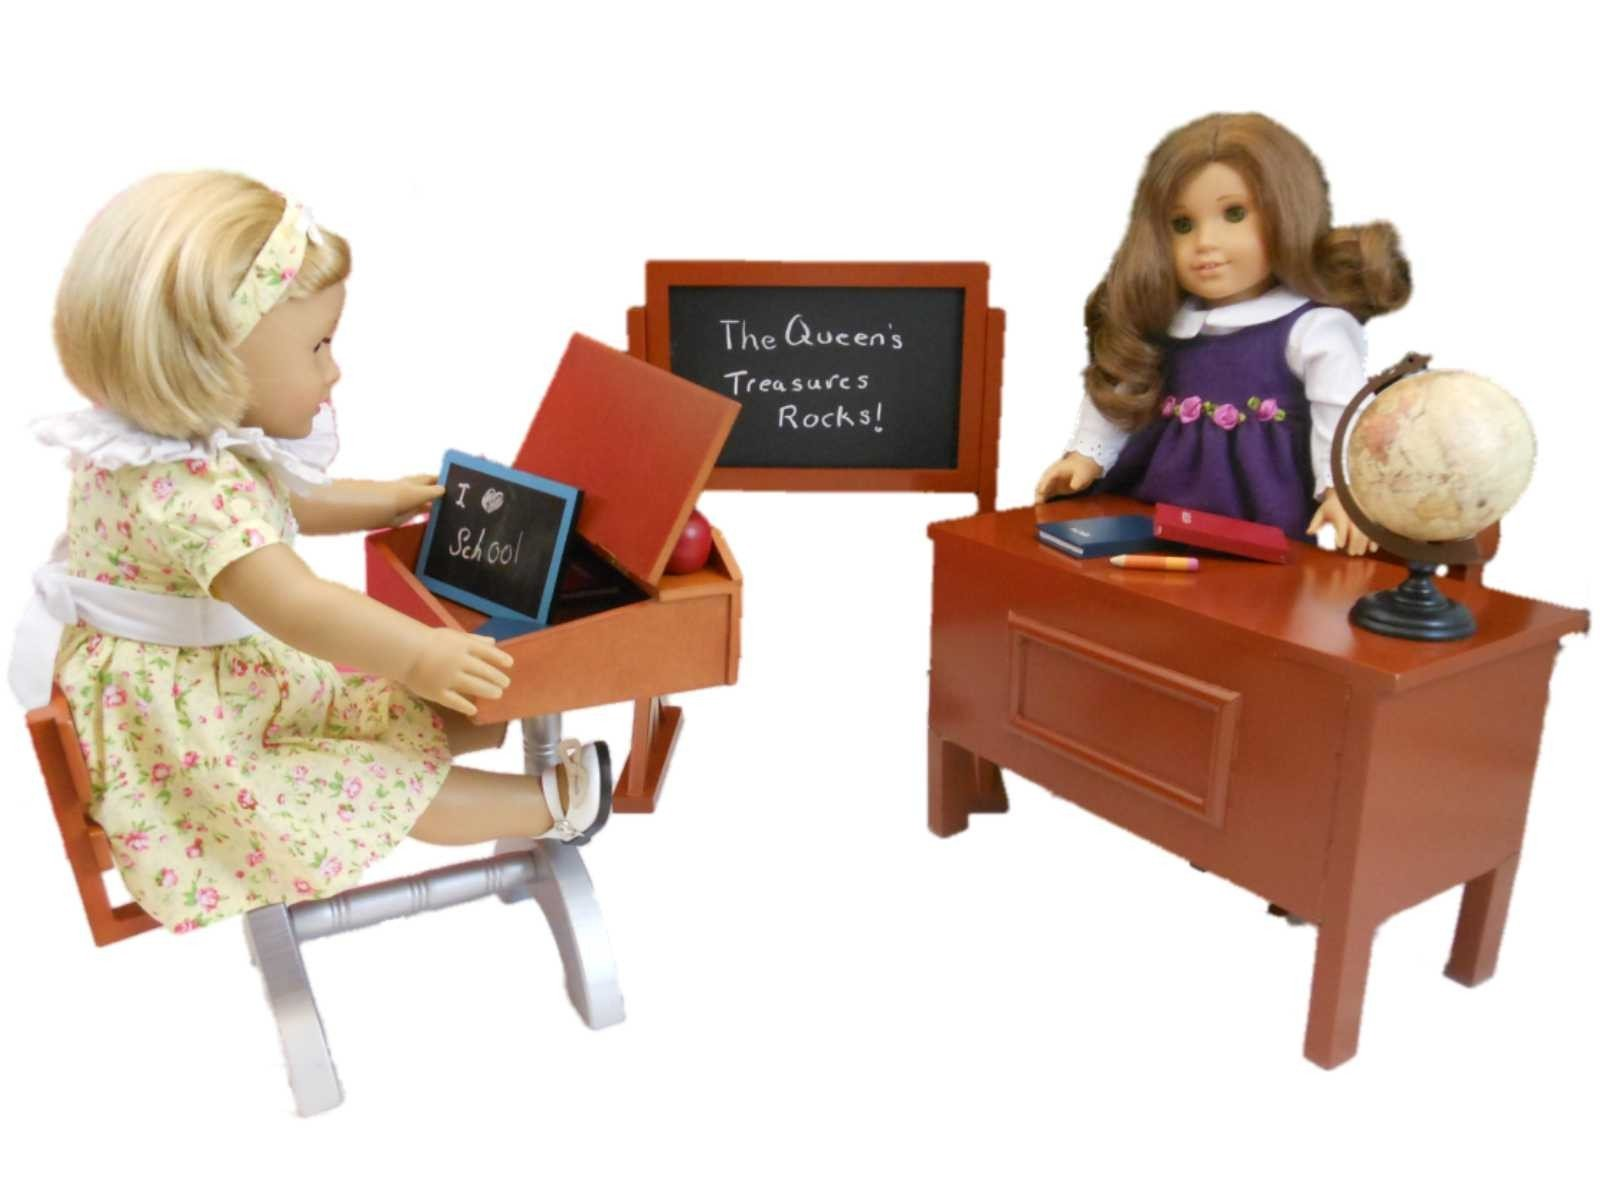 1930 Style School Desk Furniture Accessories For 18